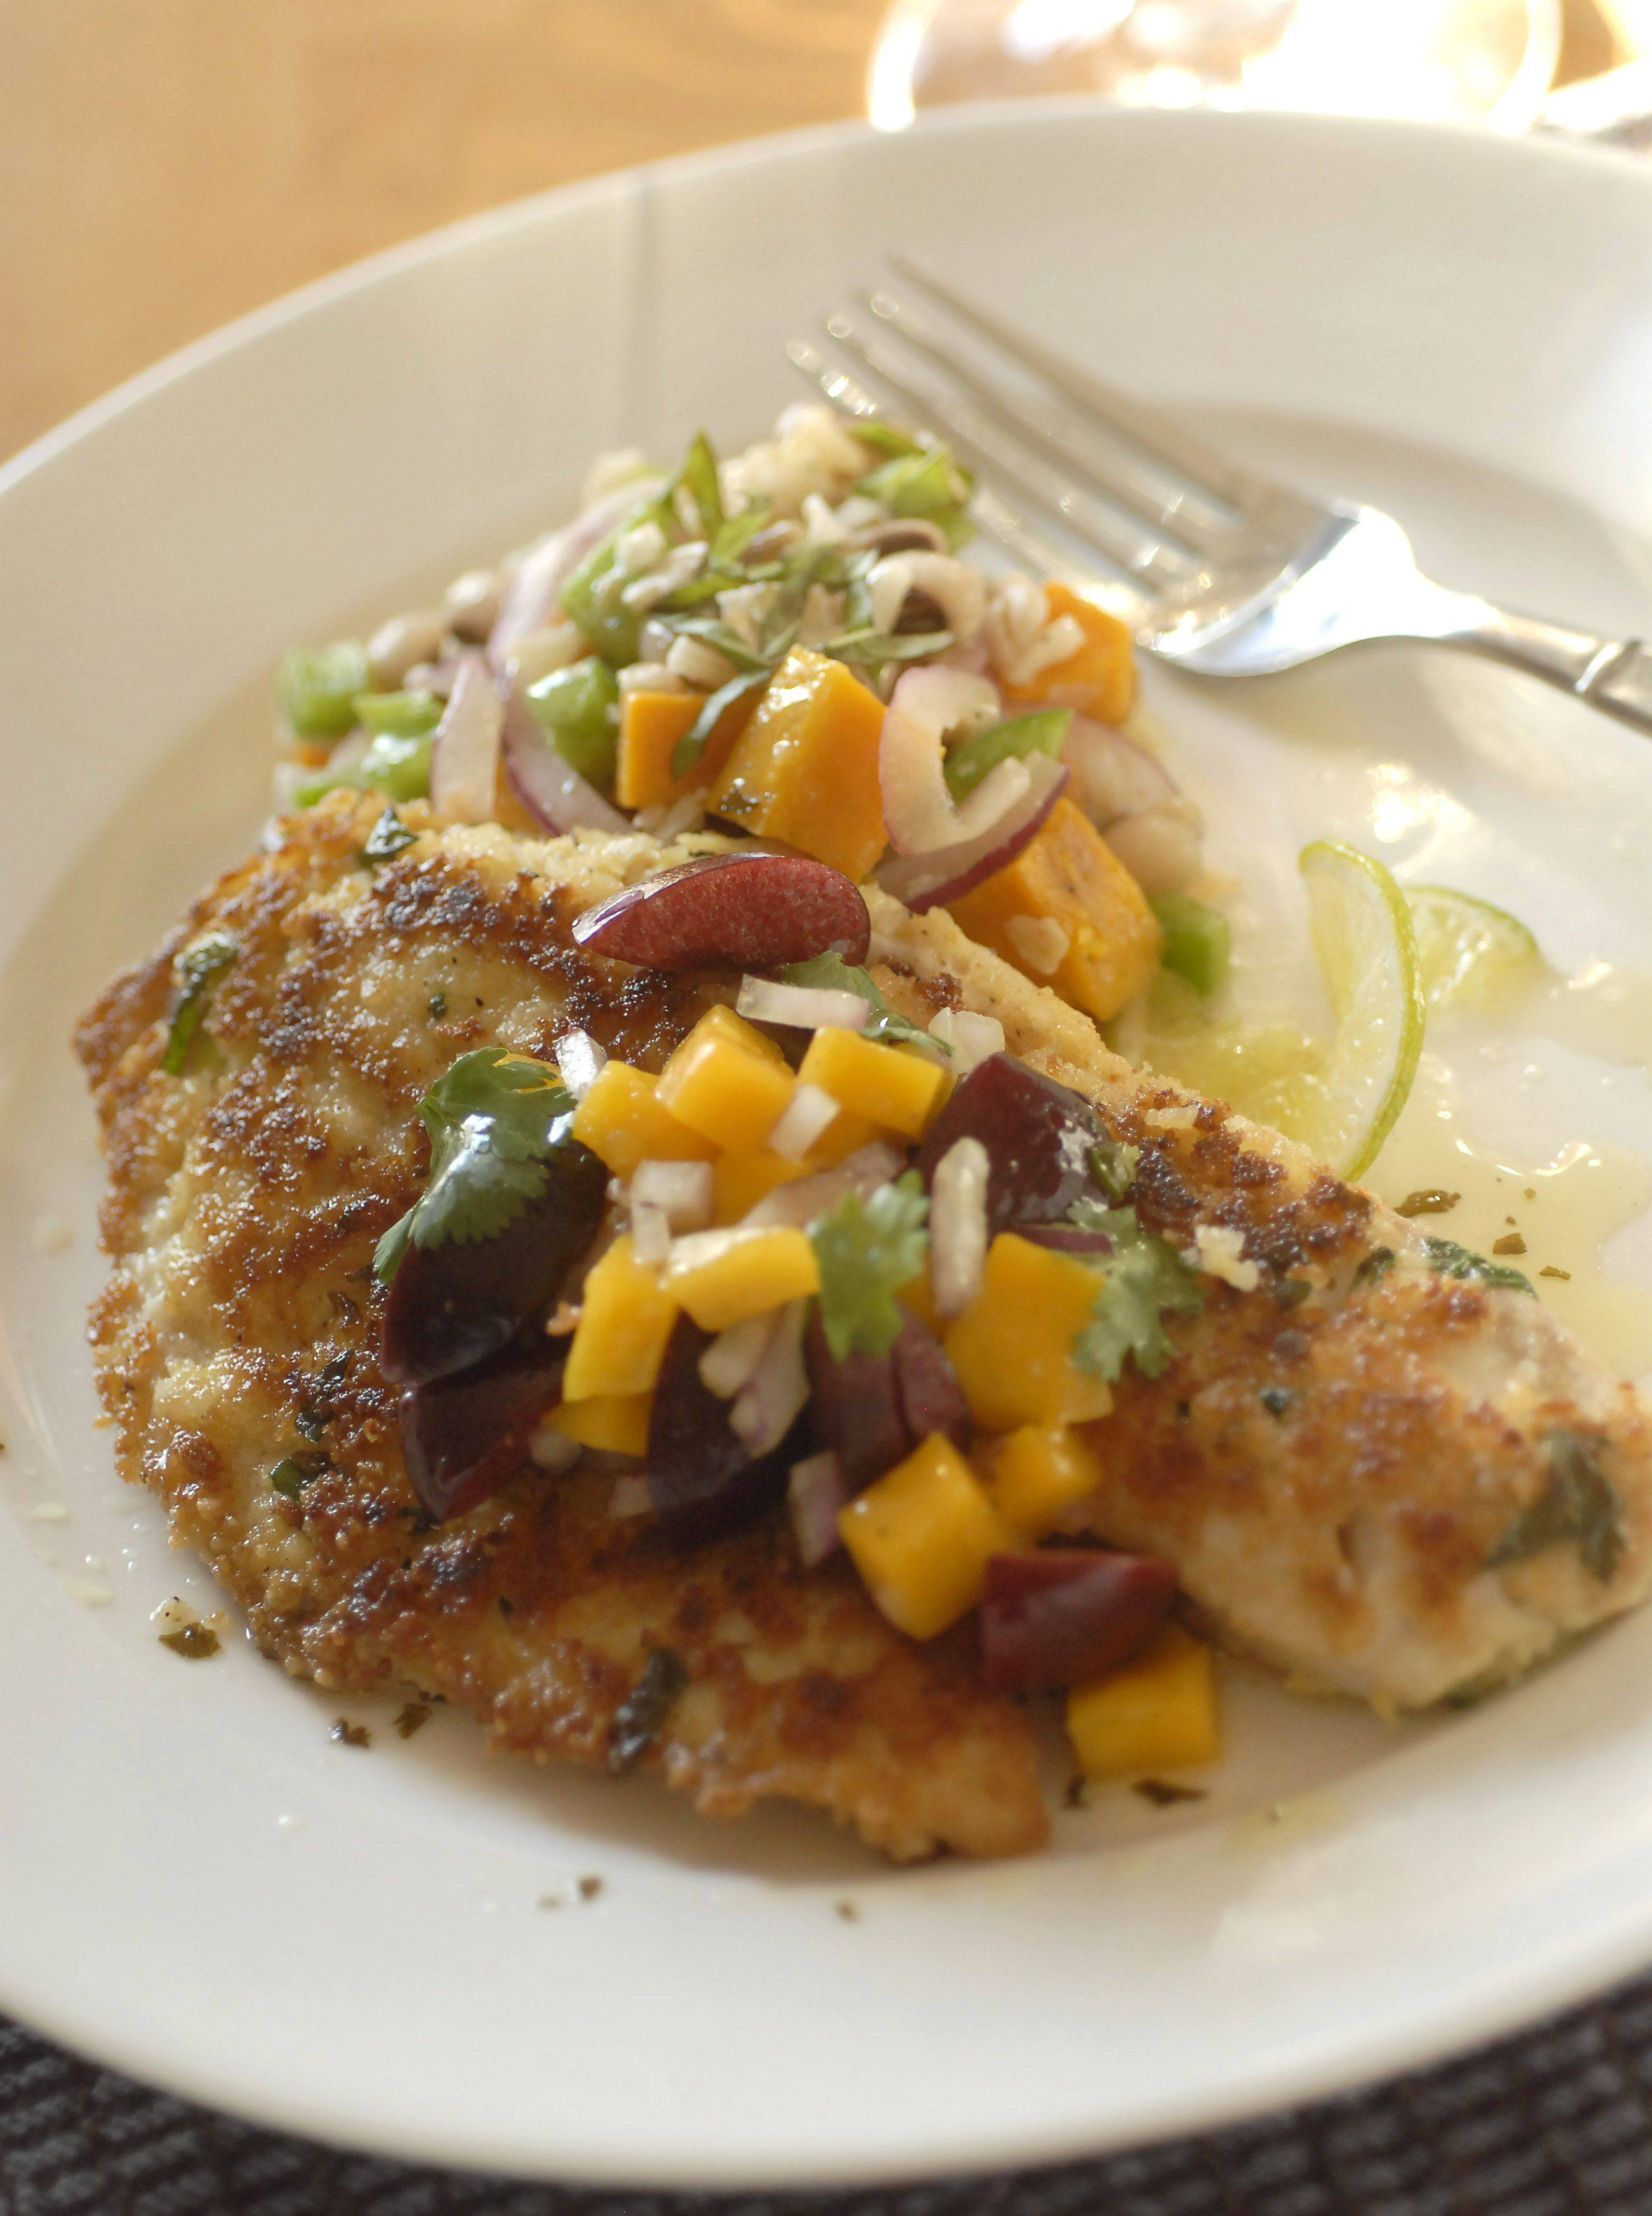 Michael Lalagos' Macadamia-Crusted Tilapia with Mango-Cherry Salsa with Black-Eyed Pea Brown Rice and Butternut Squash Salad